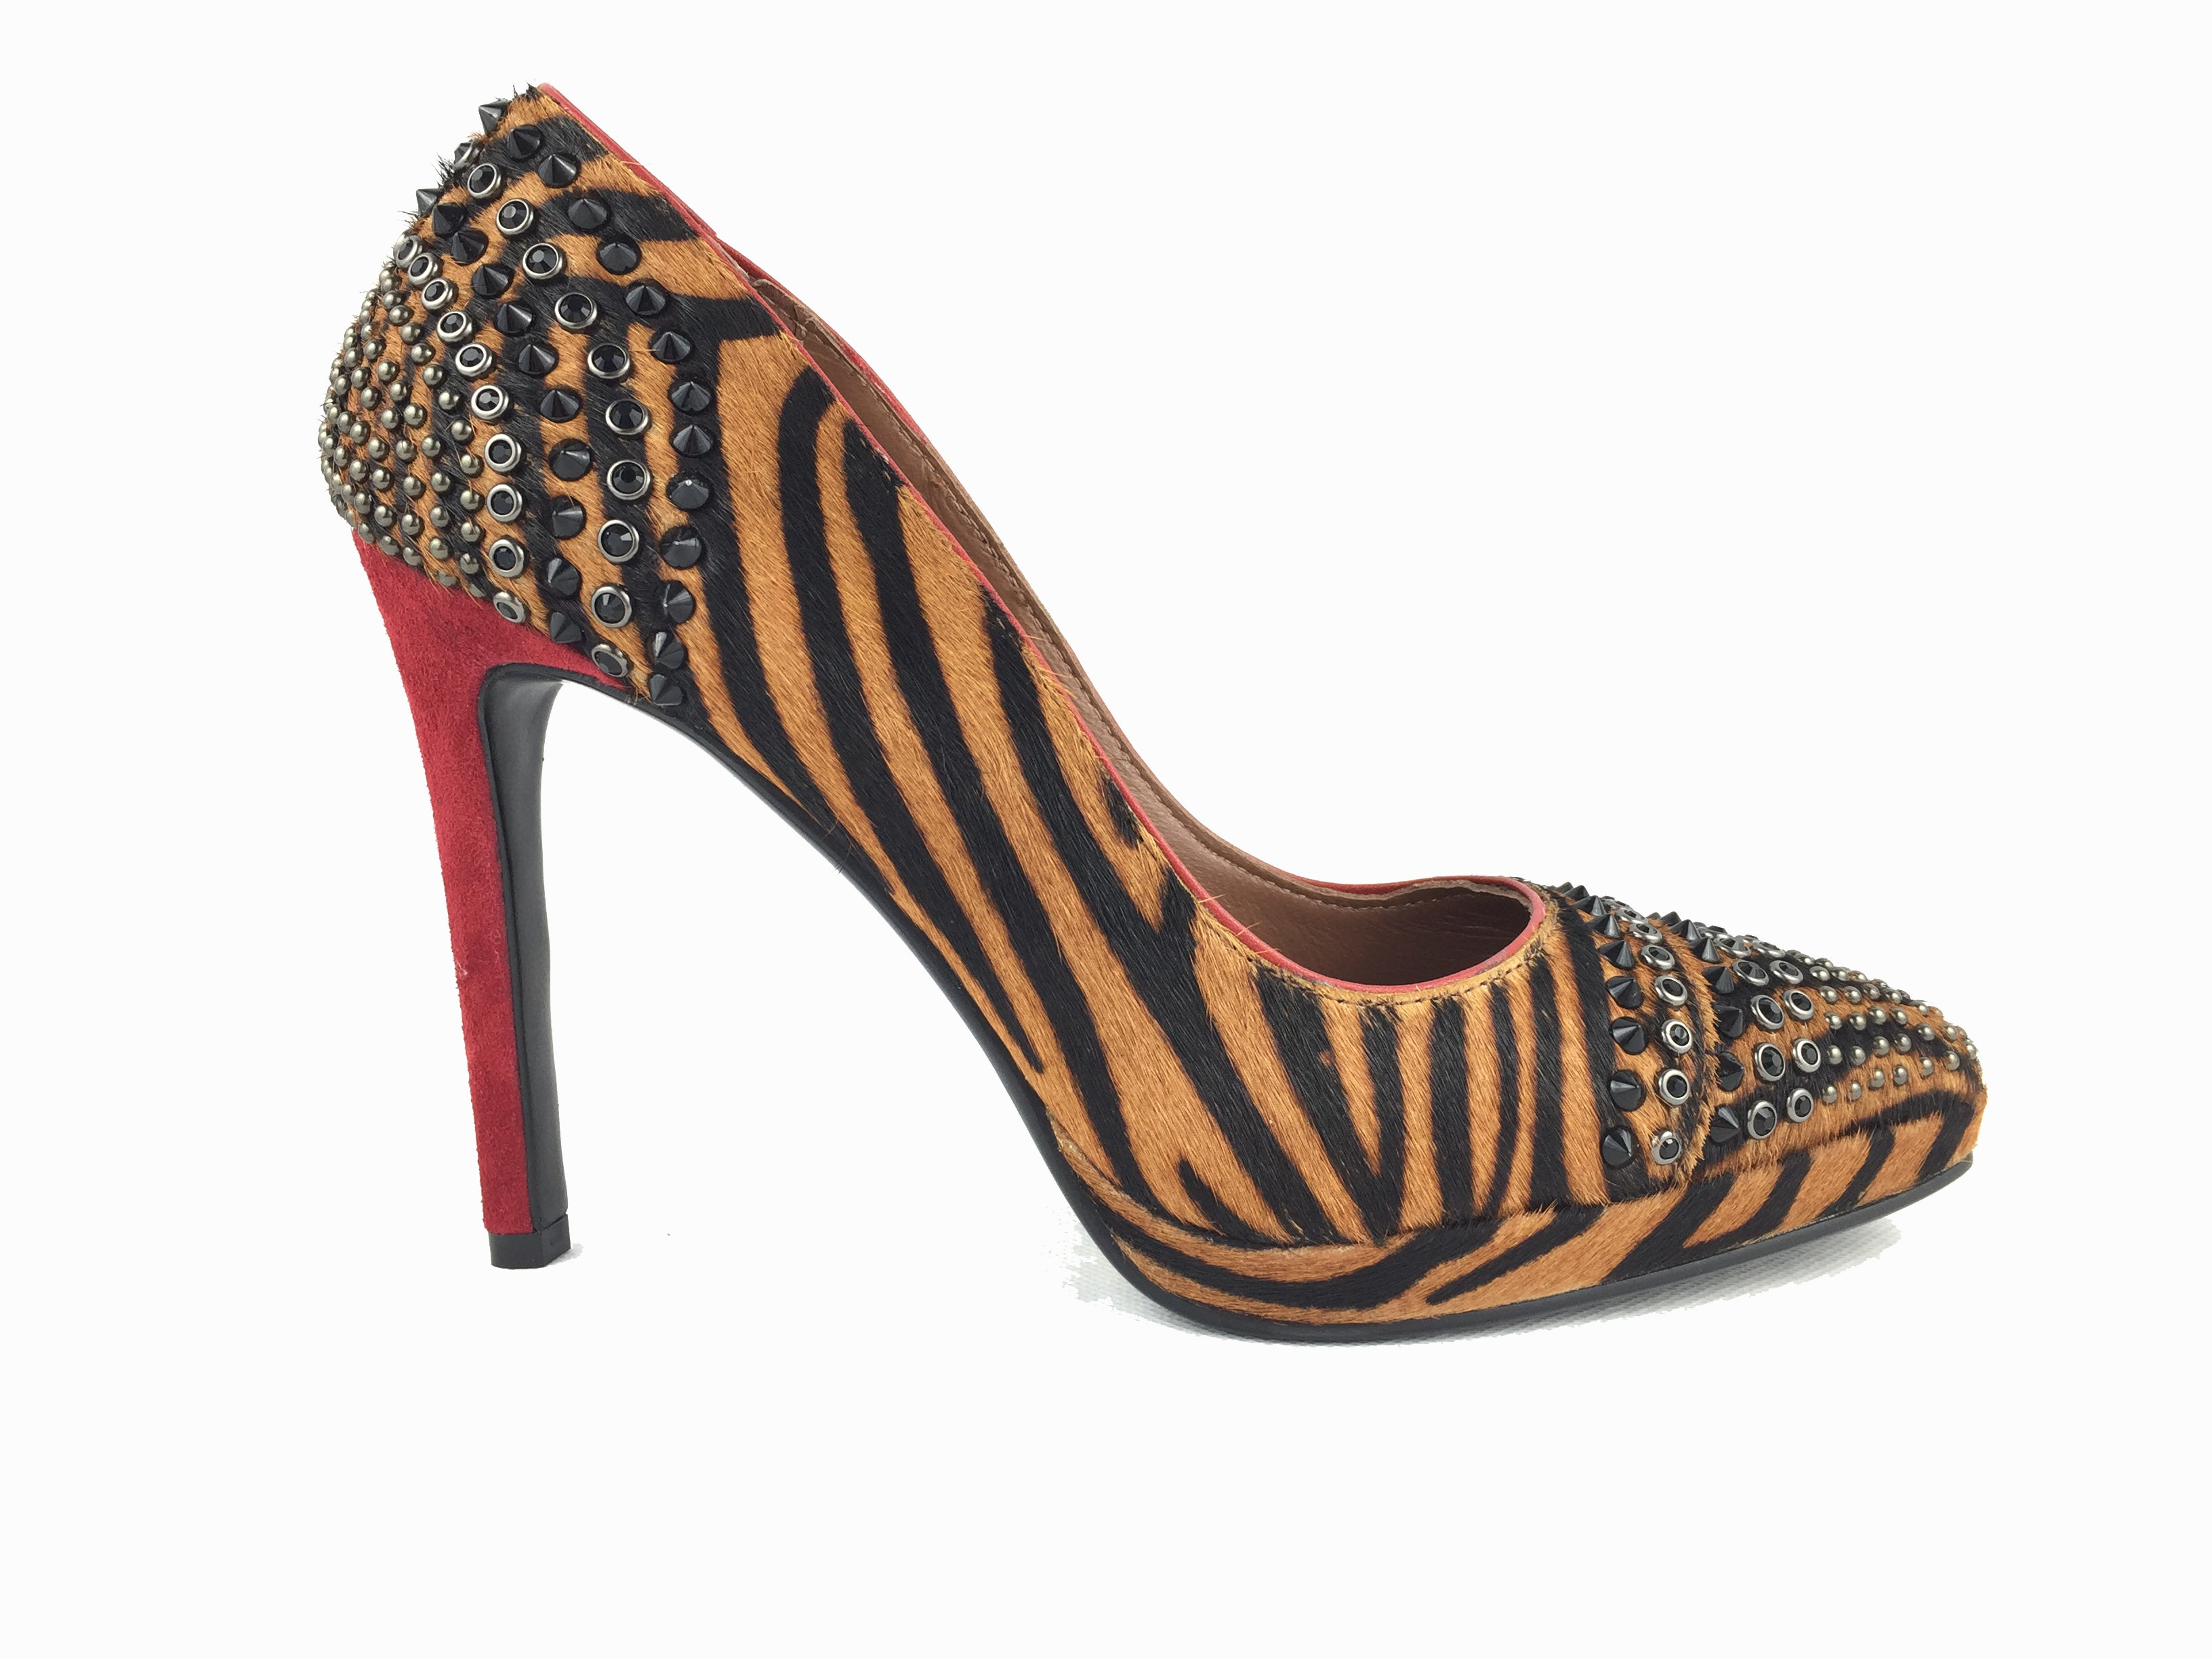 Fur tiger print design heels. Suede red heel. Black diamante and stud embellished toe and back. Hidden platform 1.5cm. Heel height 10cm. Matching bag available.